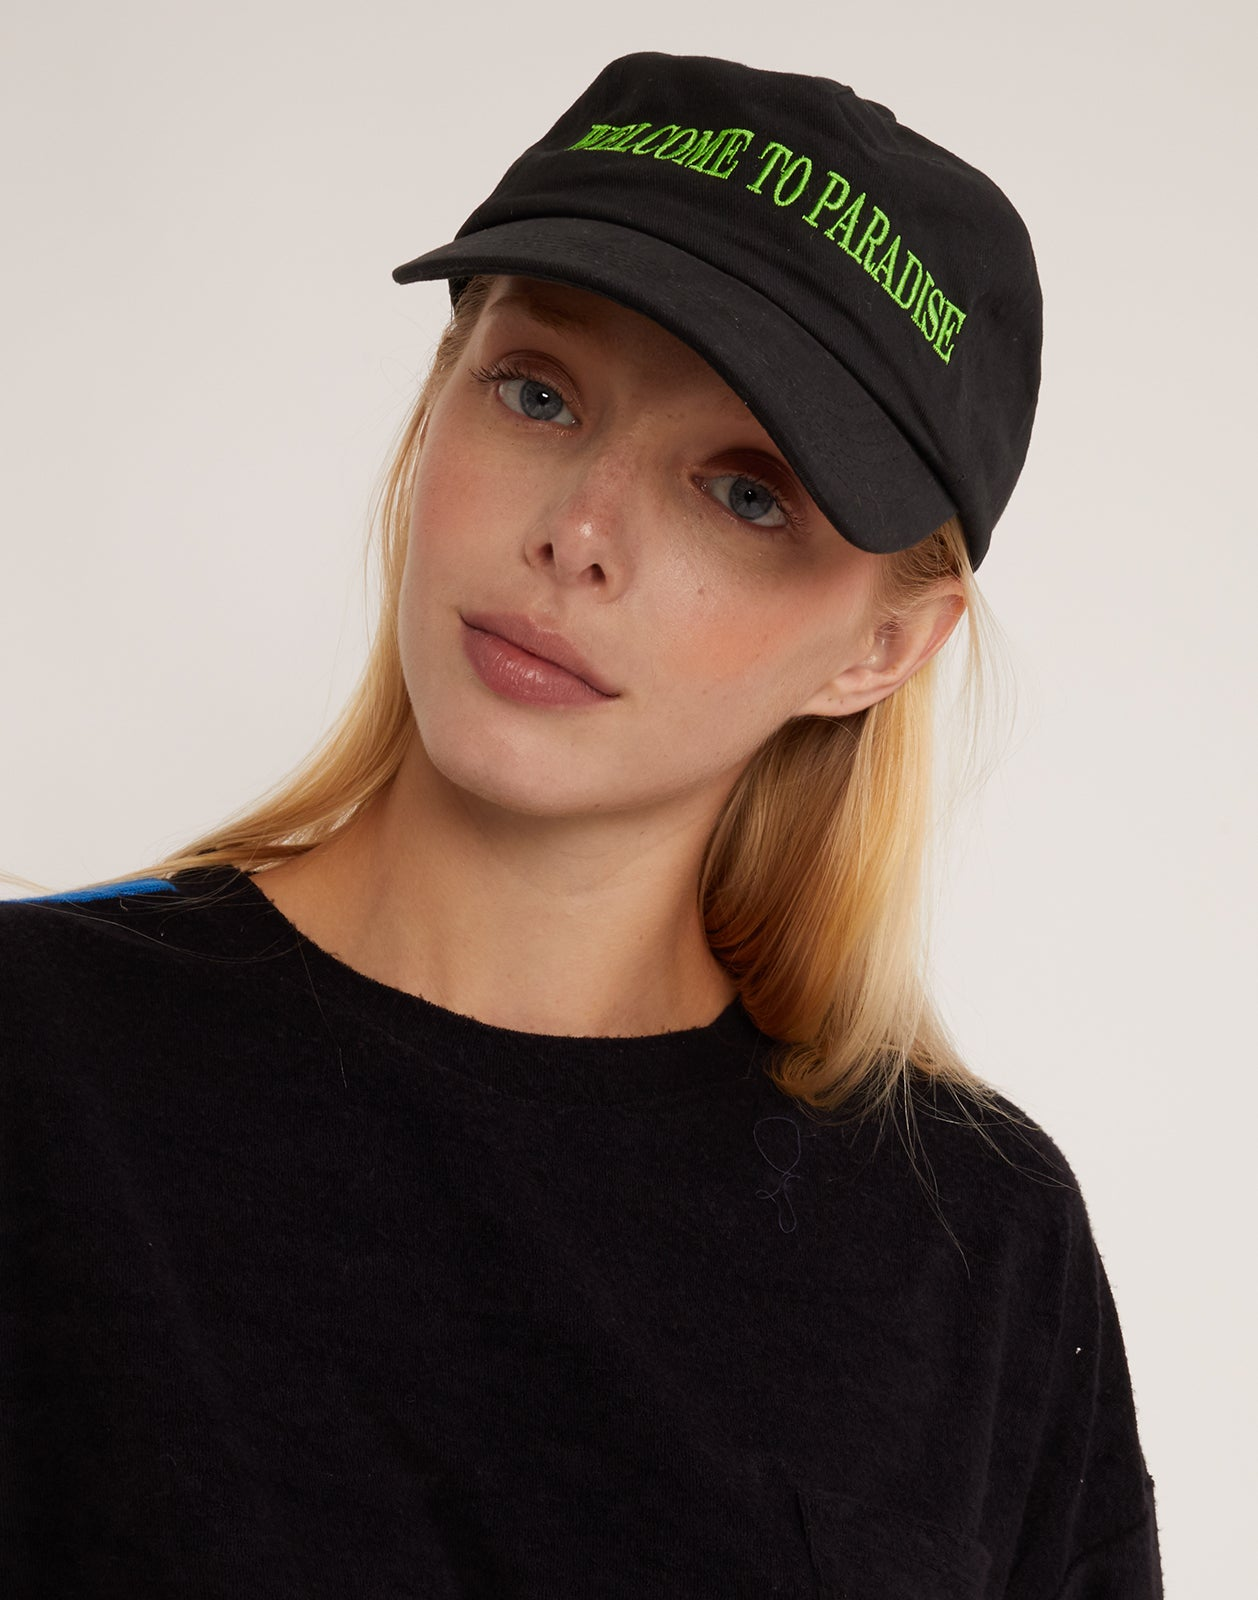 Model wearing a black baseball cap with green 'welcome to paradise' baseball hat.